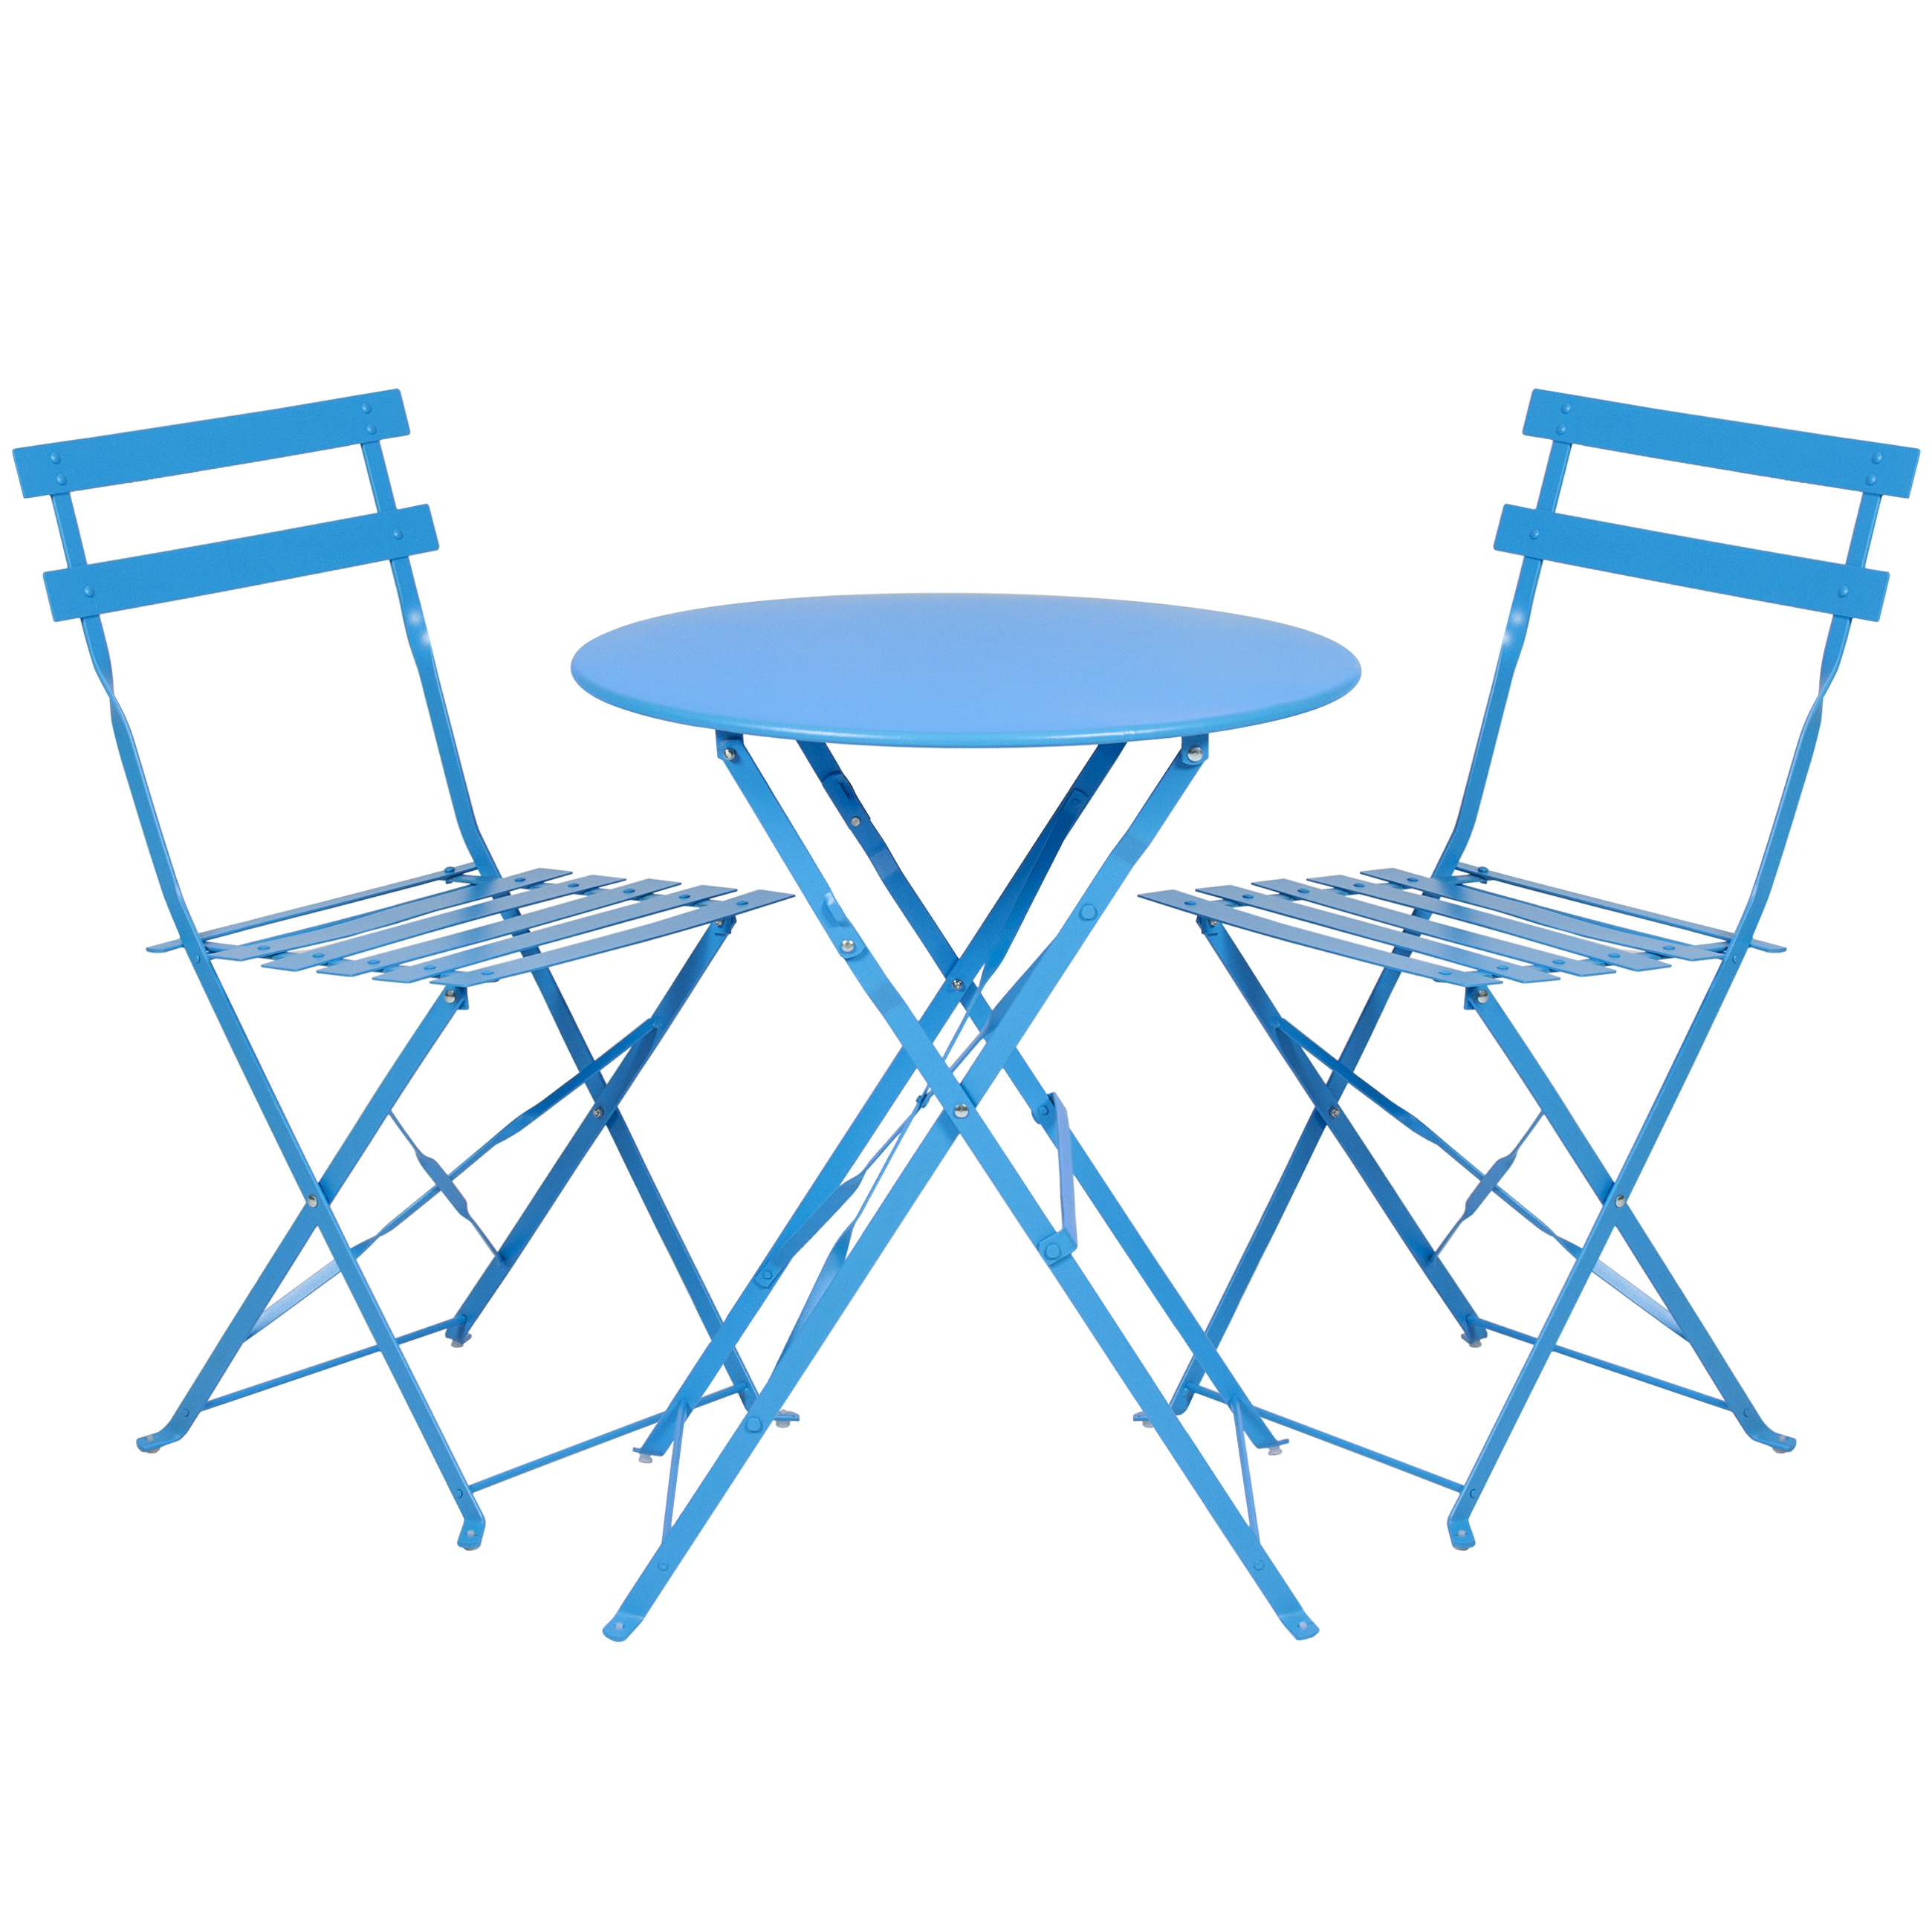 Best Choice Products 3-Piece Portable Folding Metal Bistro Set w/ Table and 2 Chairs - Blue